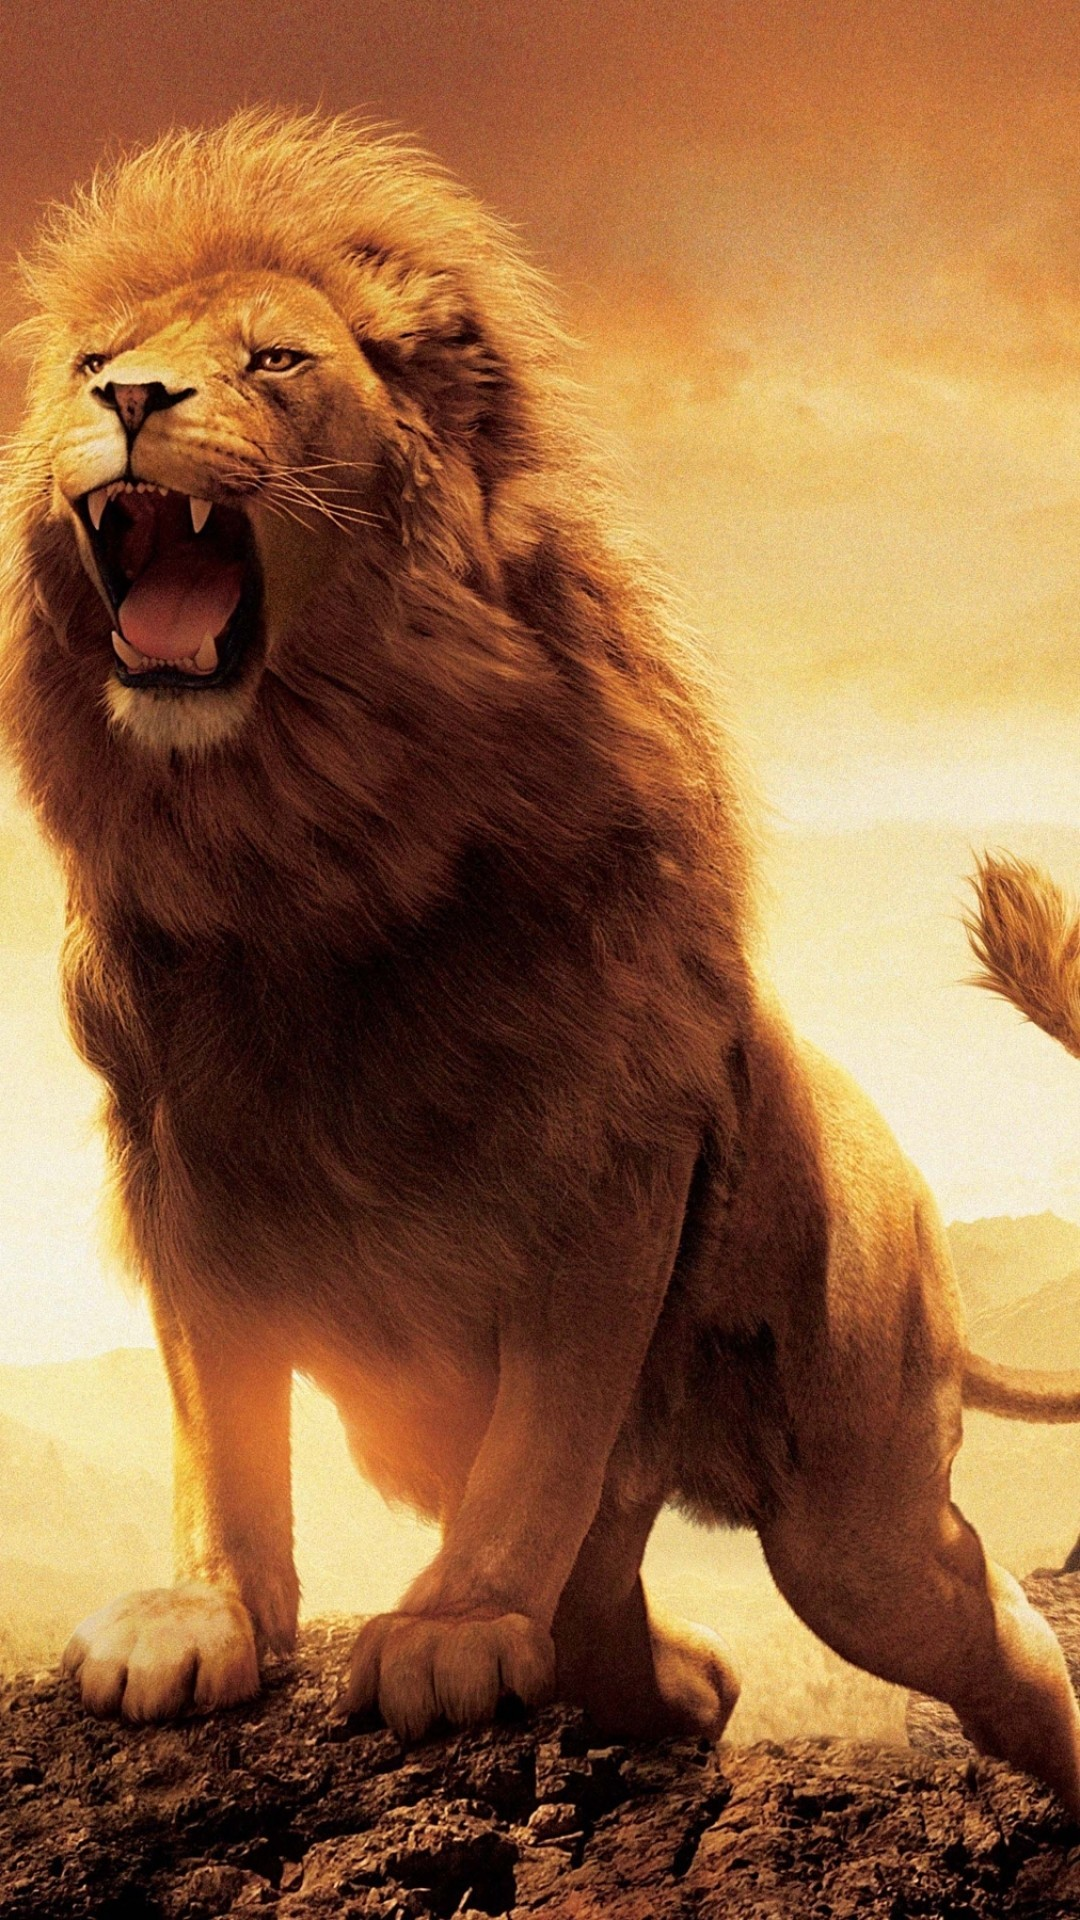 Res: 1080x1920, Animal Wallpapers. Download the following Roaring Lion ...